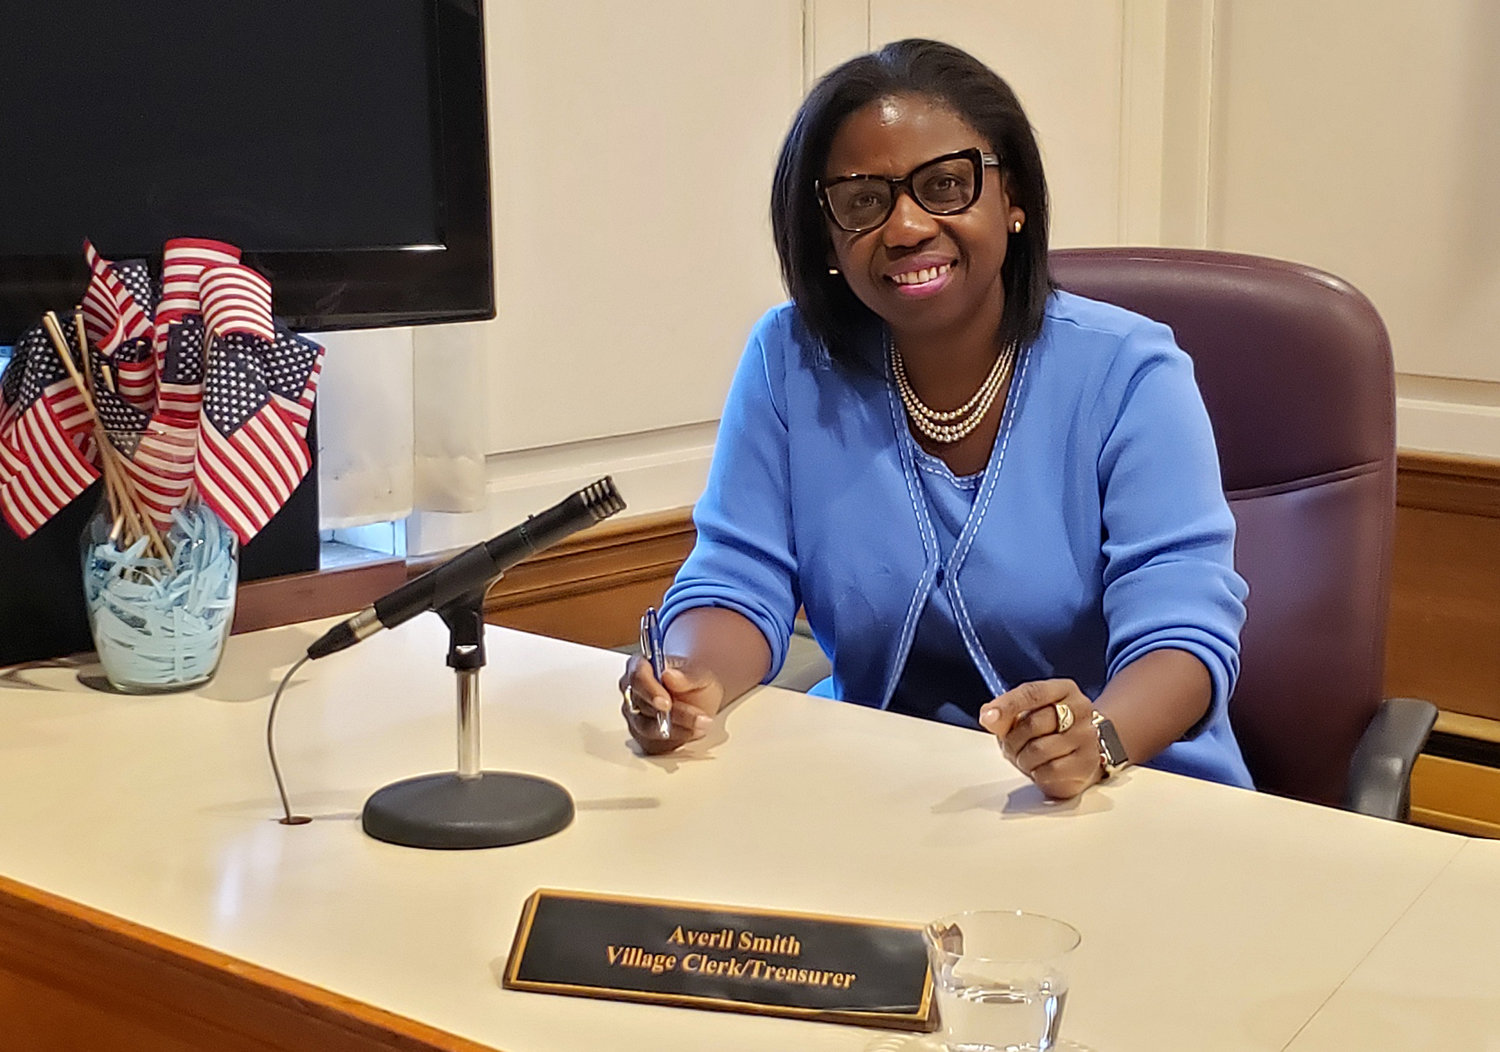 Malverne's new village clerk, Averil Smith, was appointed during the village's Feb. 5 board meeting.